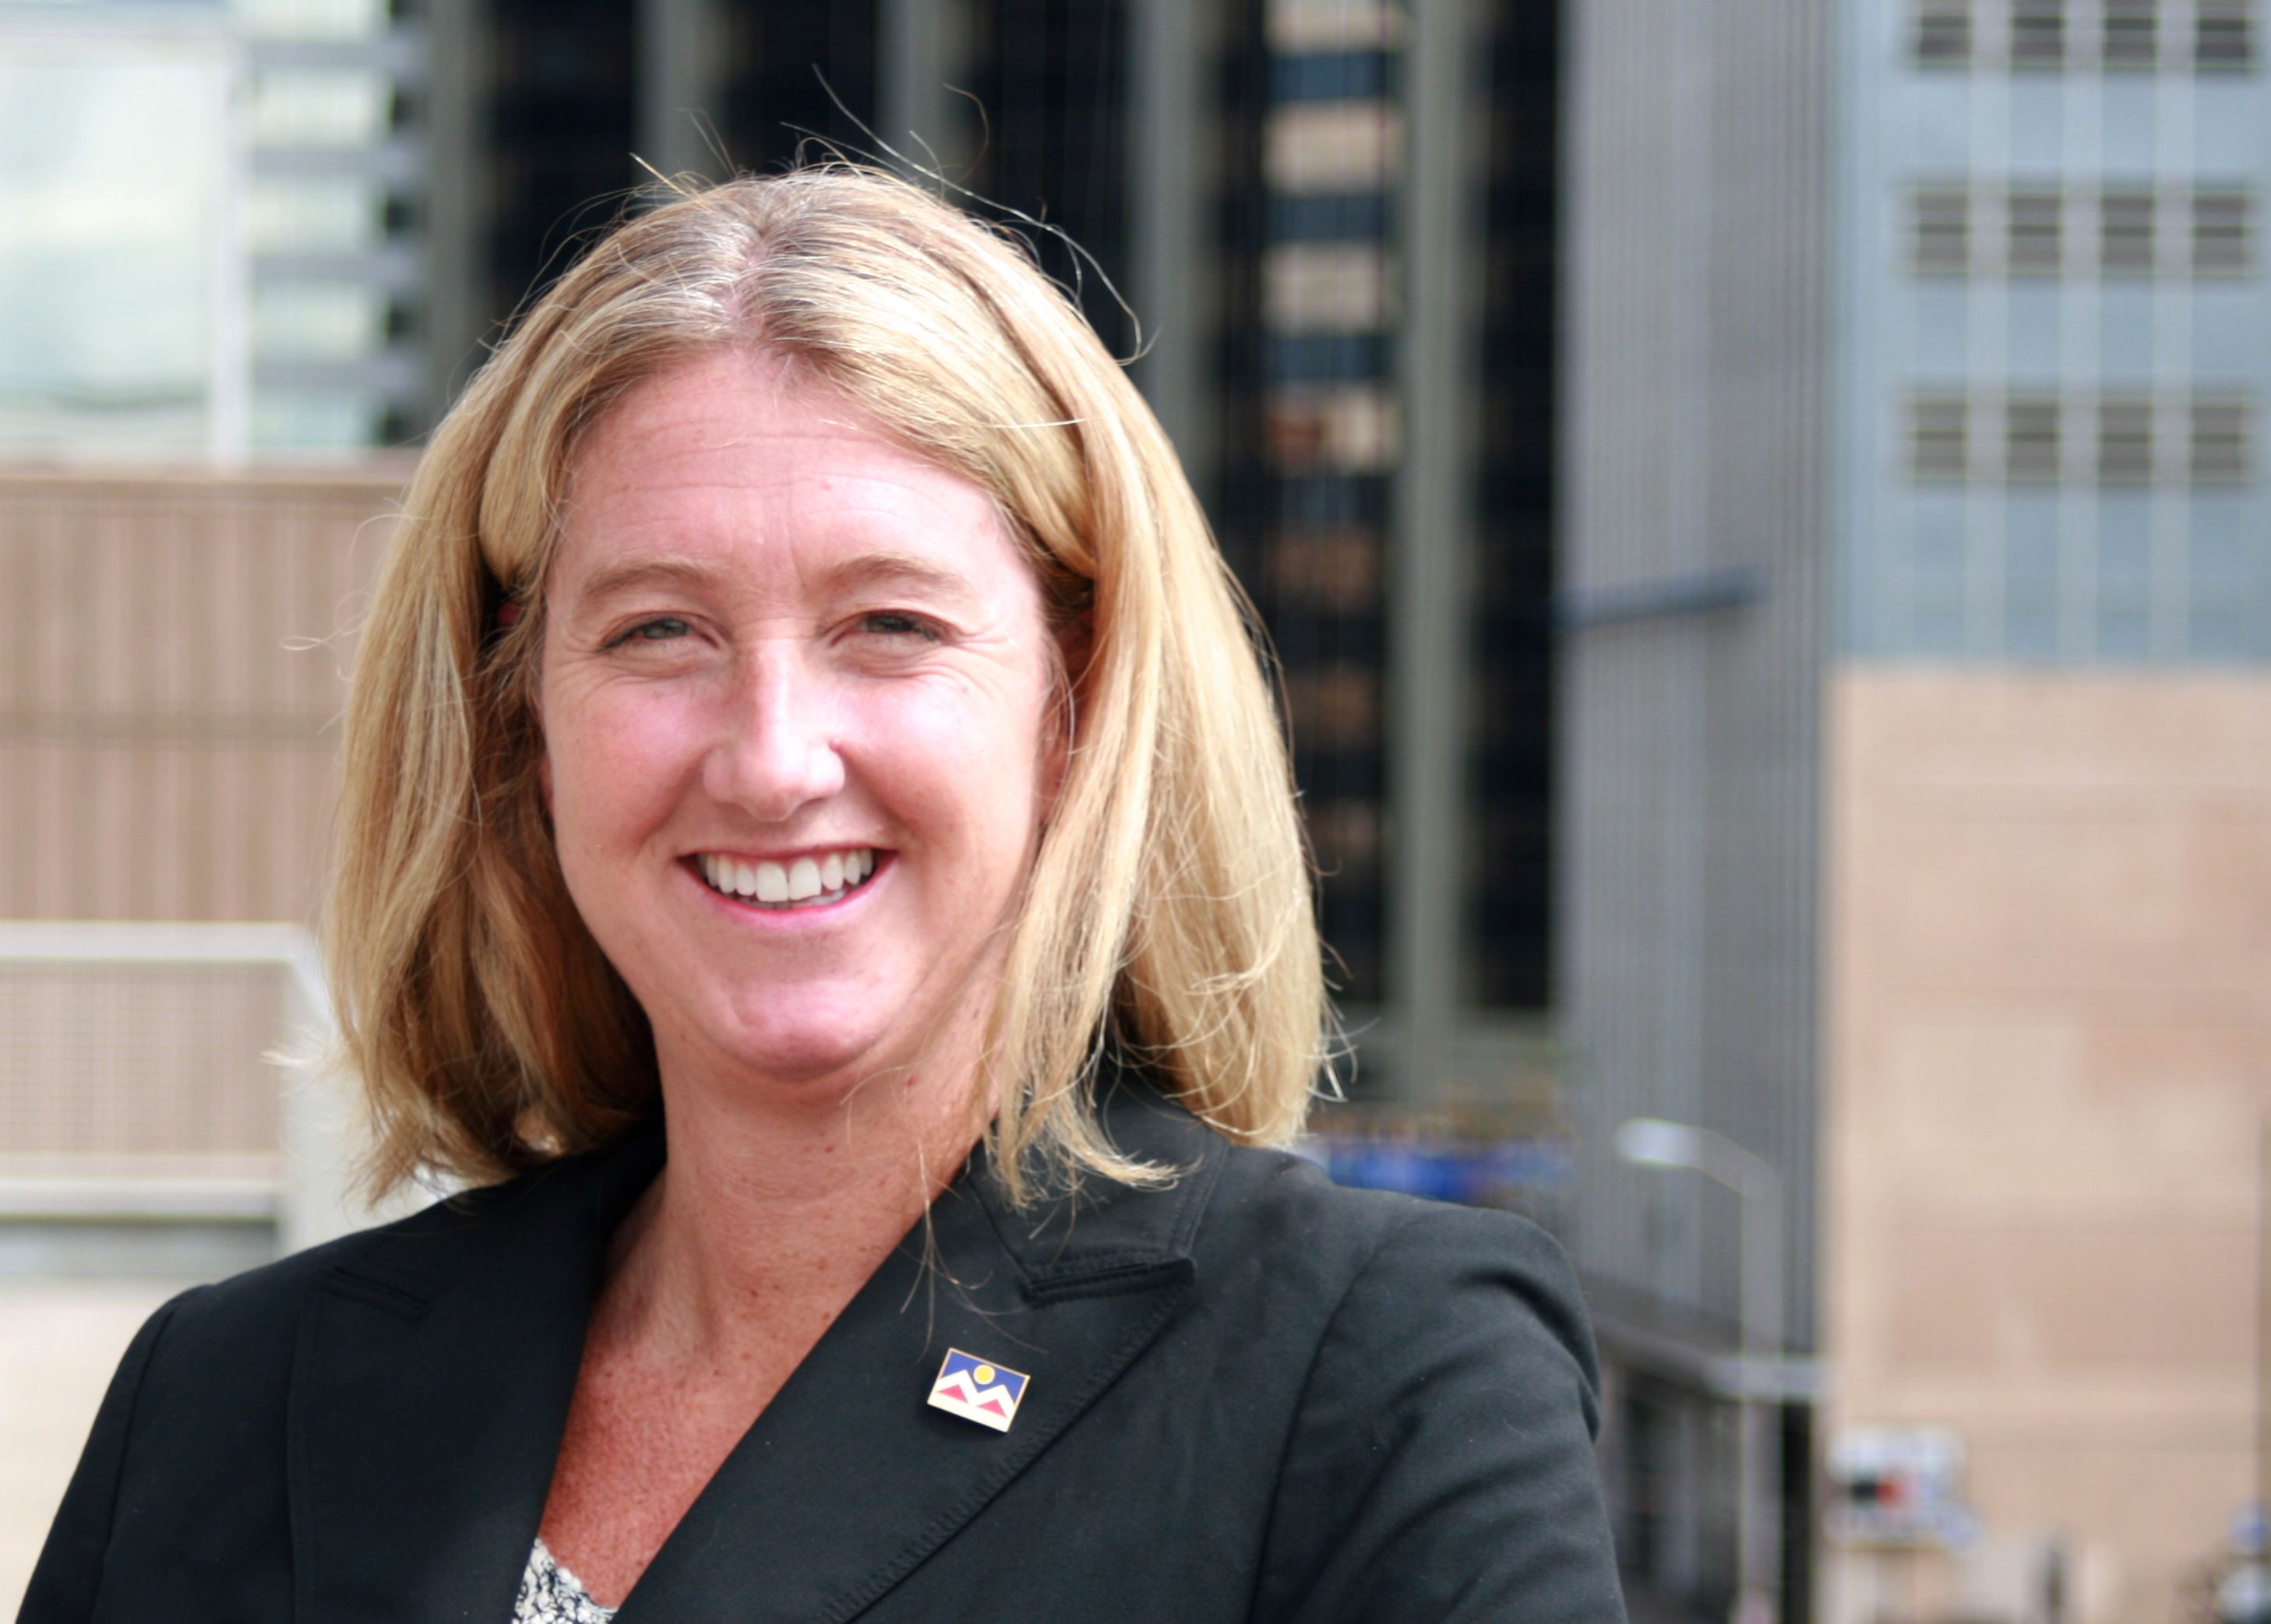 <p>Cary Kennedy, a Democrat, announced her run for governor of Colorado on Monday.</p>